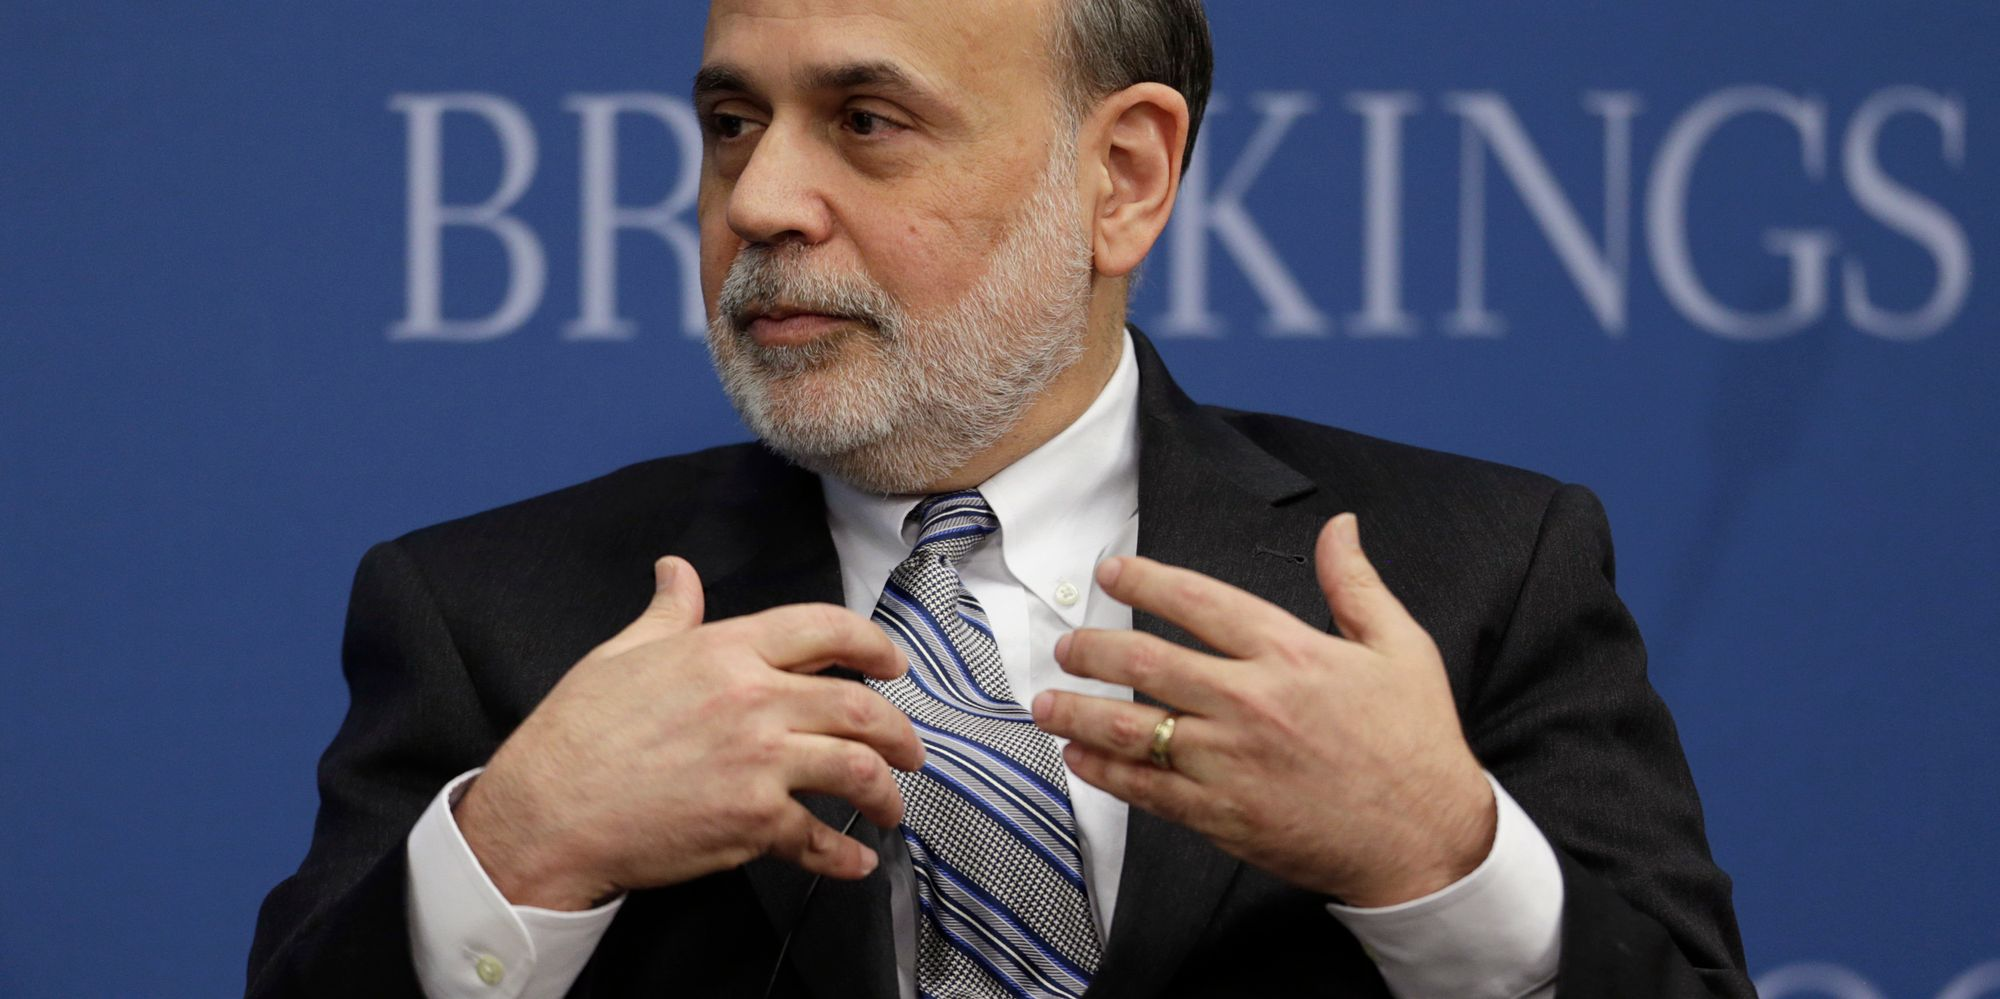 ben bernanke pictures videos breaking news bernanke more execs should have faced prosecution for 2008 financial crisis